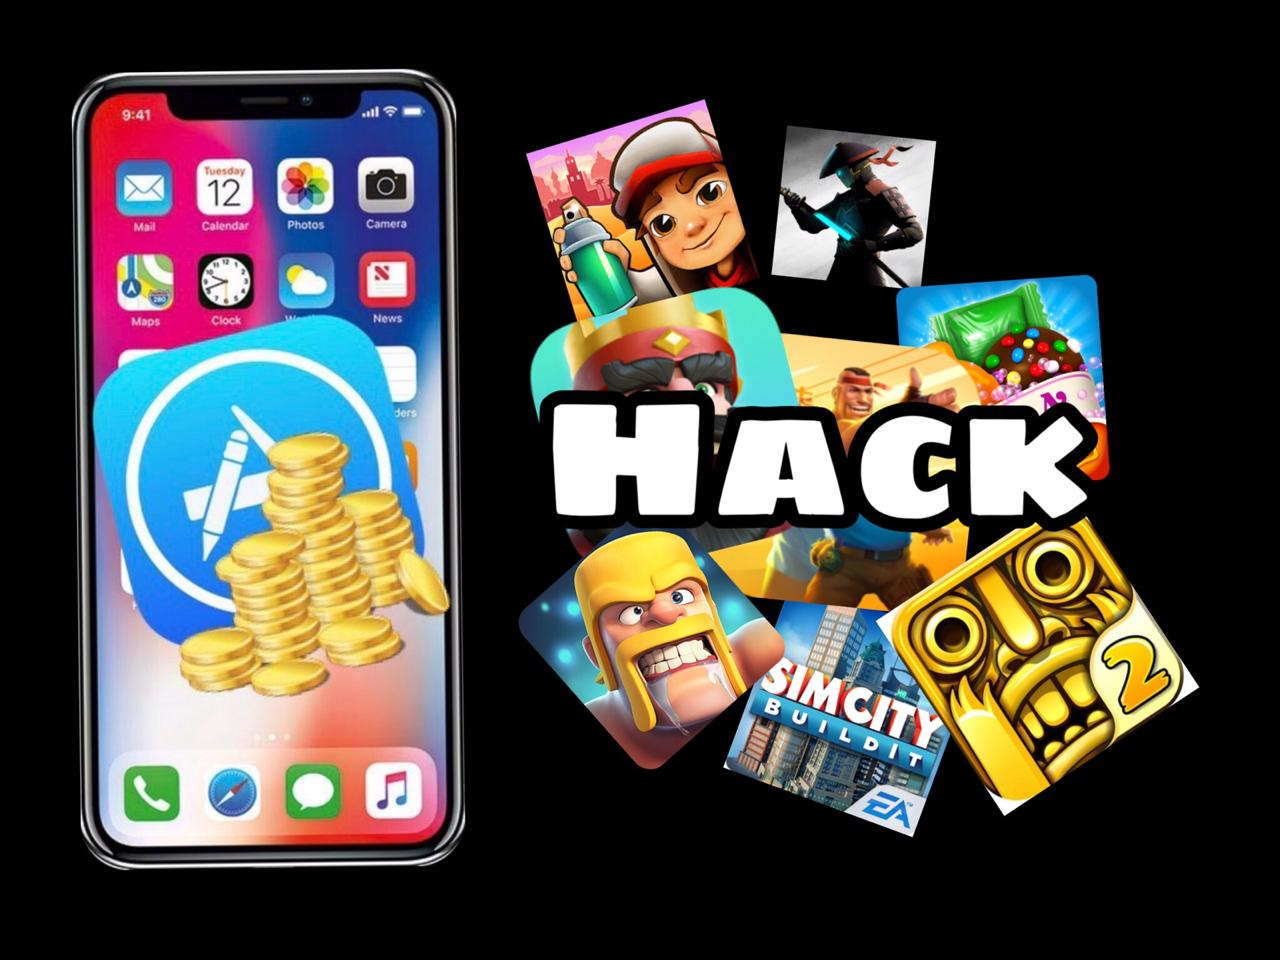 How to Hack games on iPhone without Jailbreak (iOS 14) - Download How to Hack games on iPhone without Jailbreak (iOS 14) for FREE - Free Cheats for Games